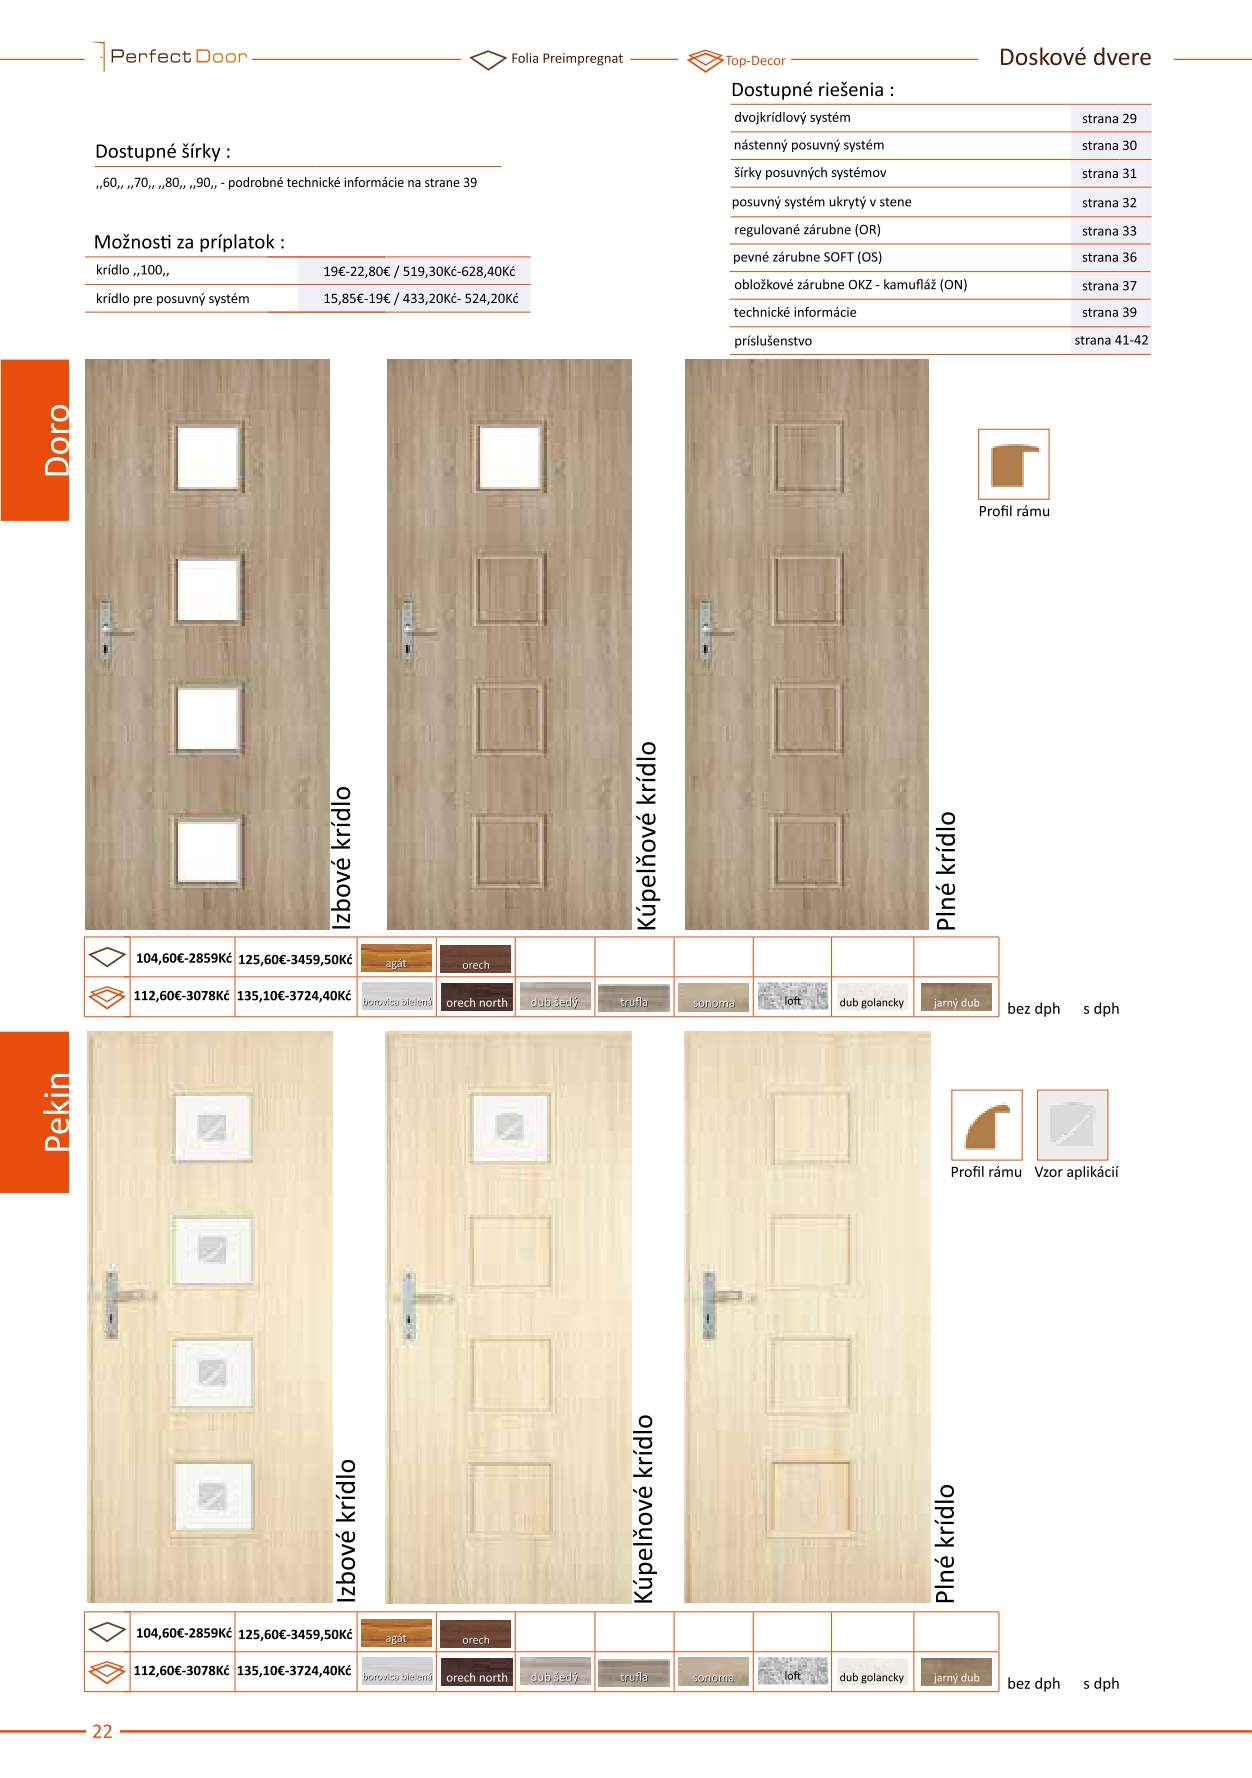 Perfectdoor katalog  1 2019 pages-to-jpg-0022